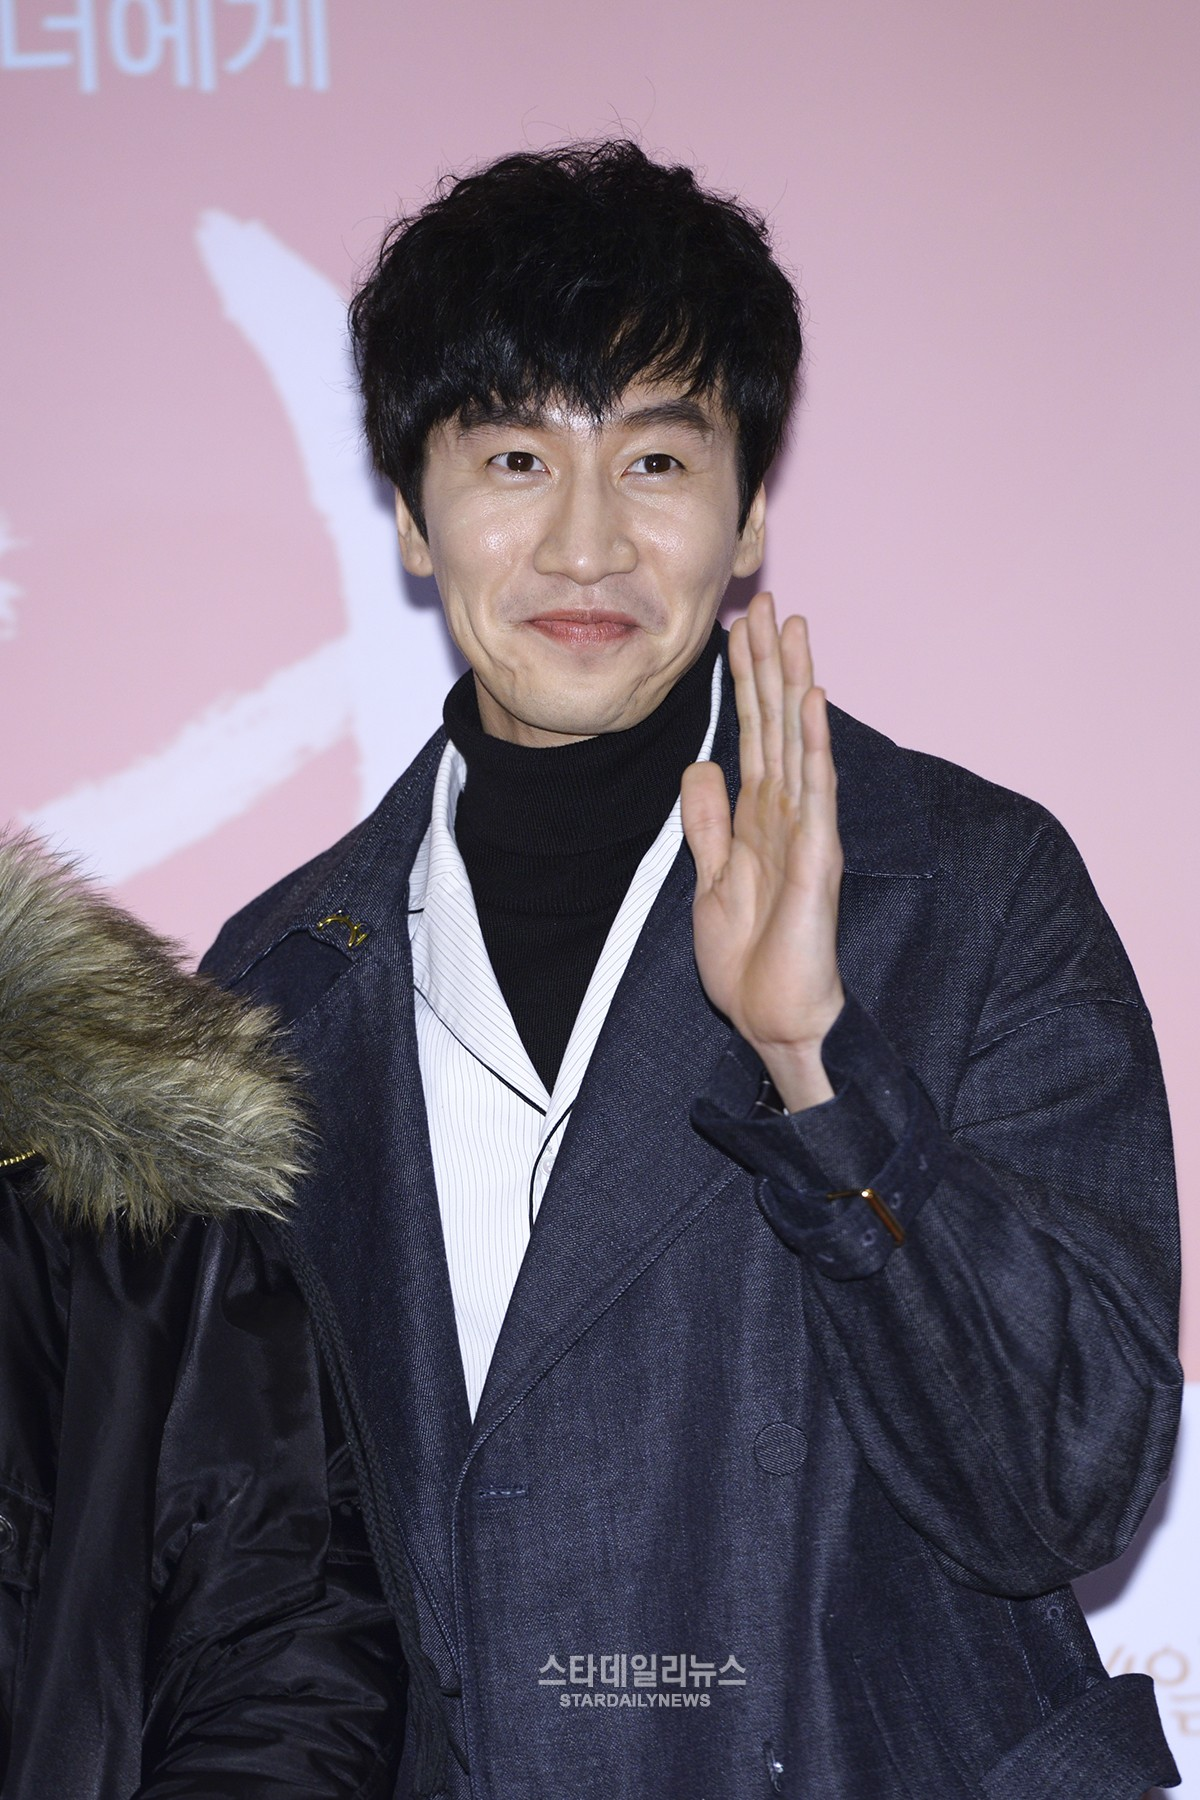 """Lee Kwang Soo in Talks to Star in Sitcom Based on Webtoon """"The Sound of Your Heart"""""""